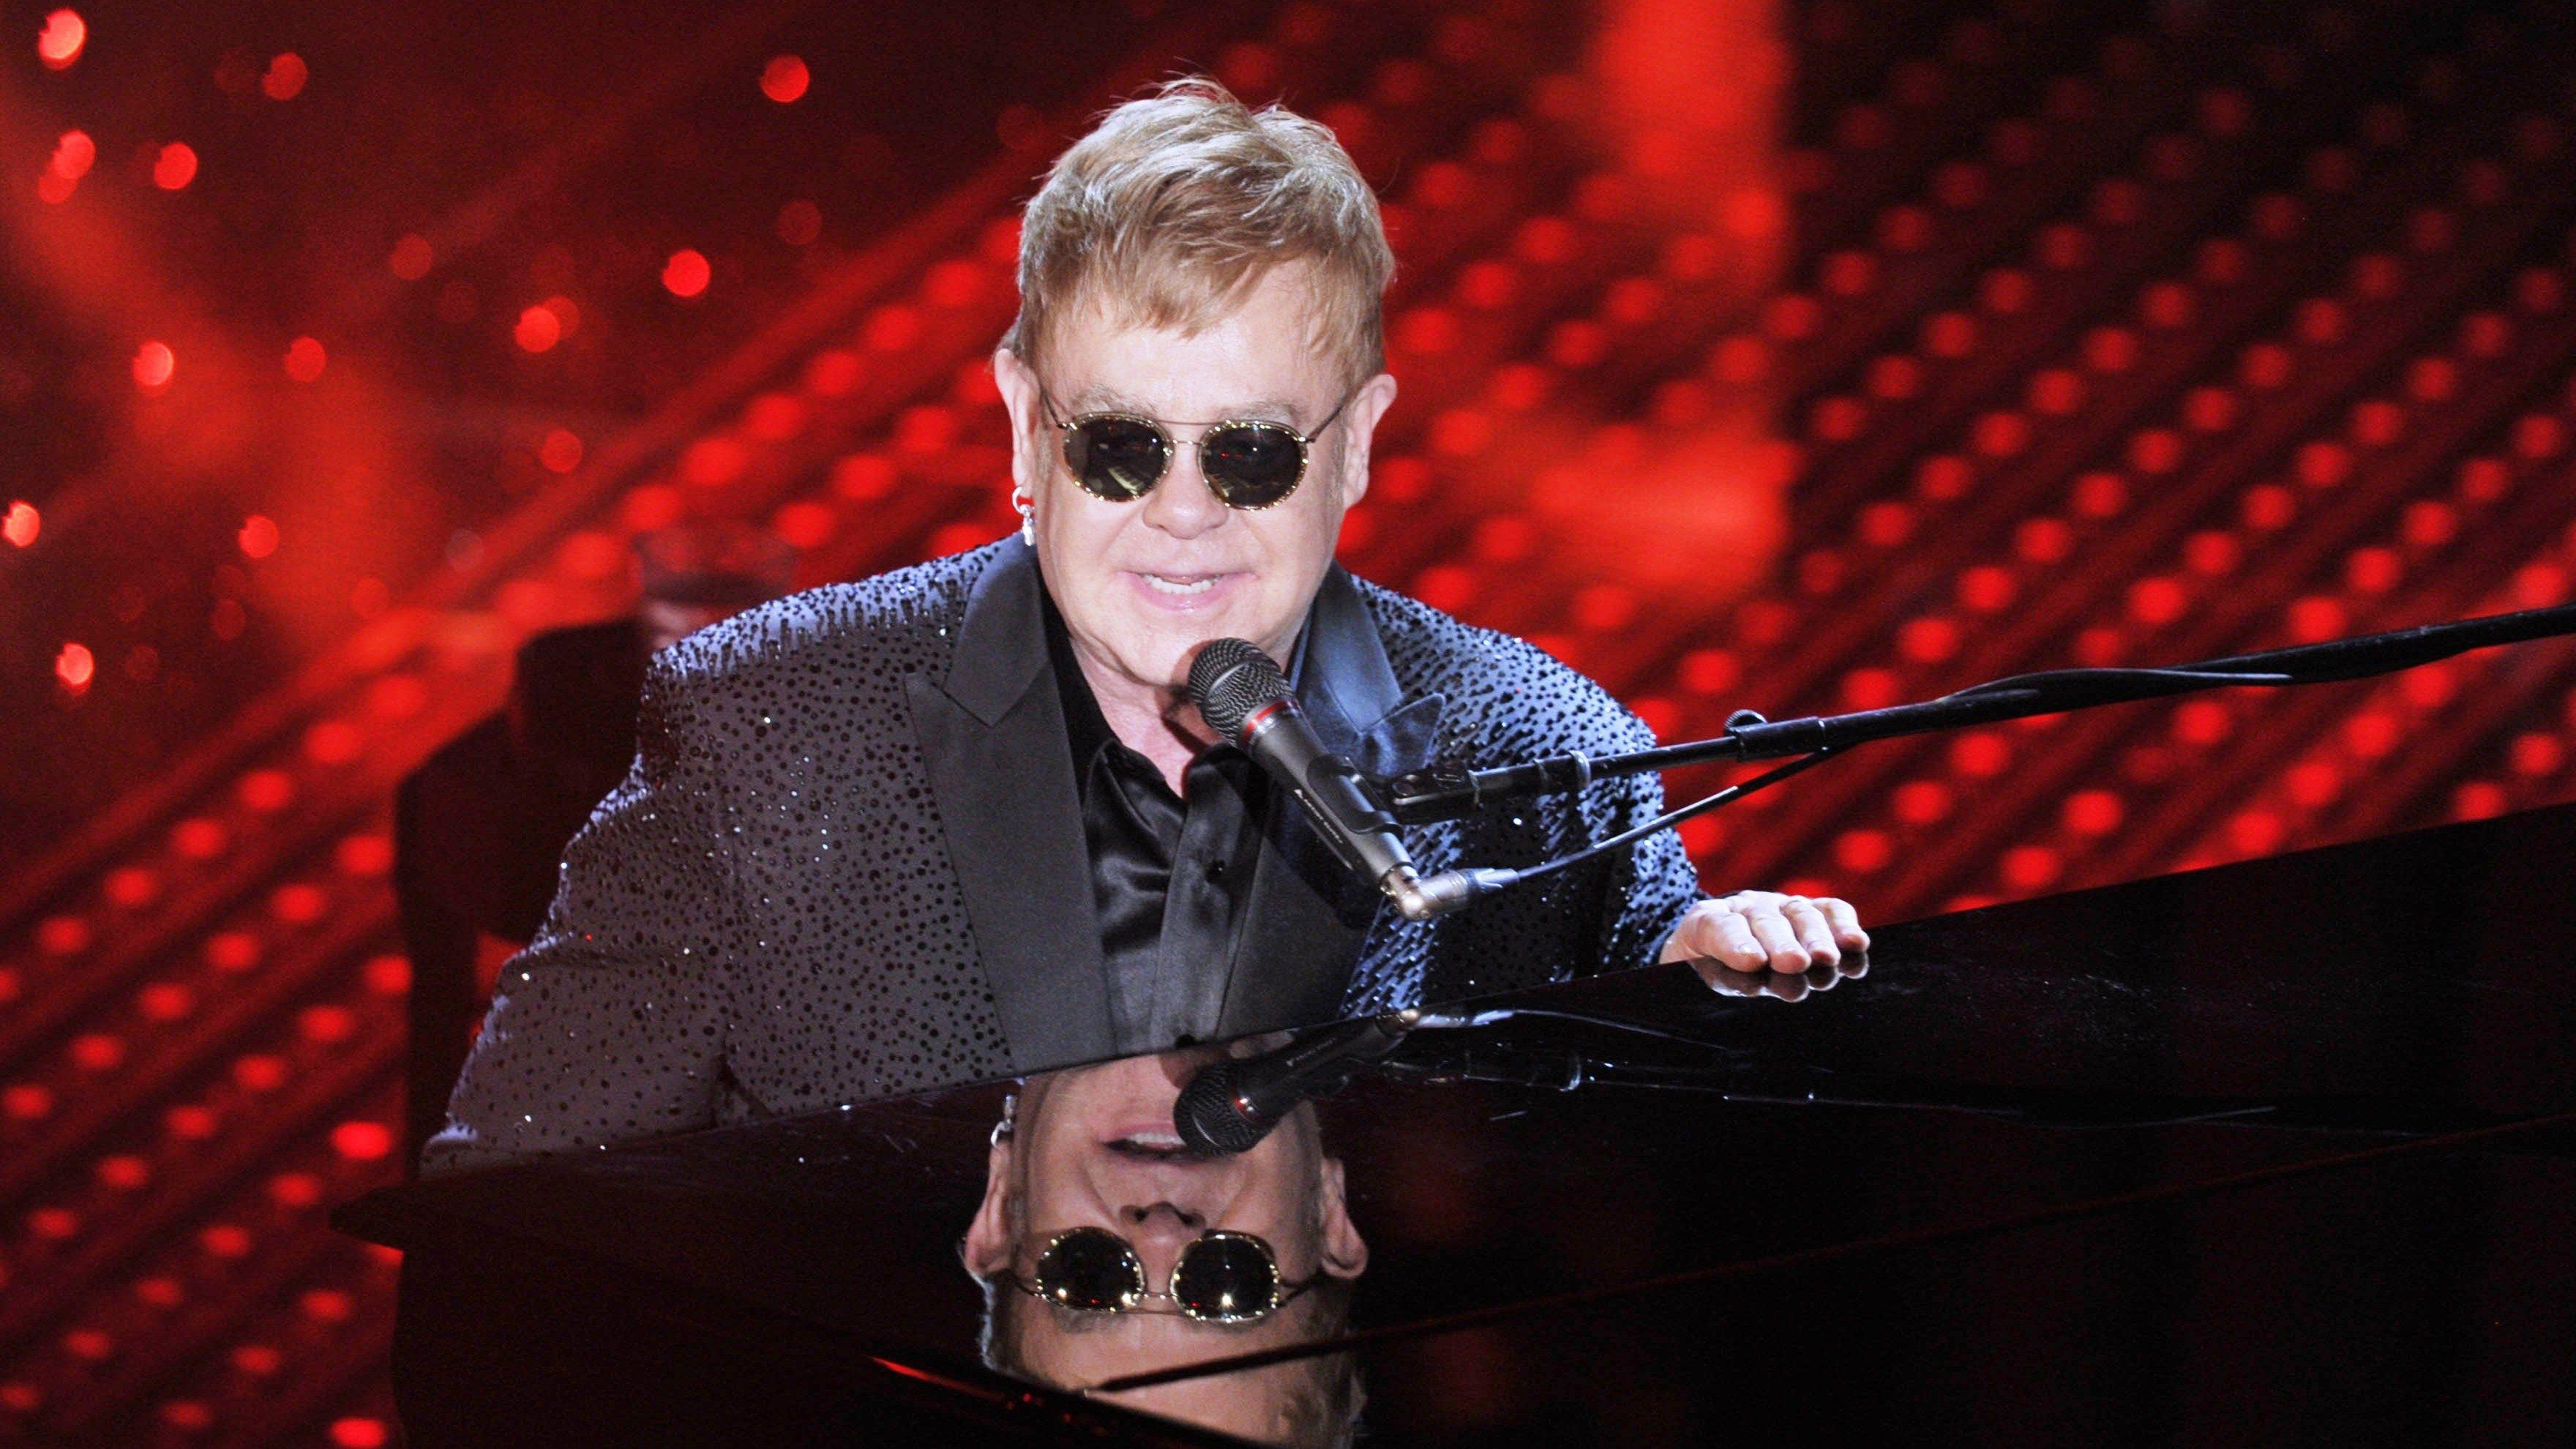 Elton John Wallpapers Image Photos Pictures Backgrounds